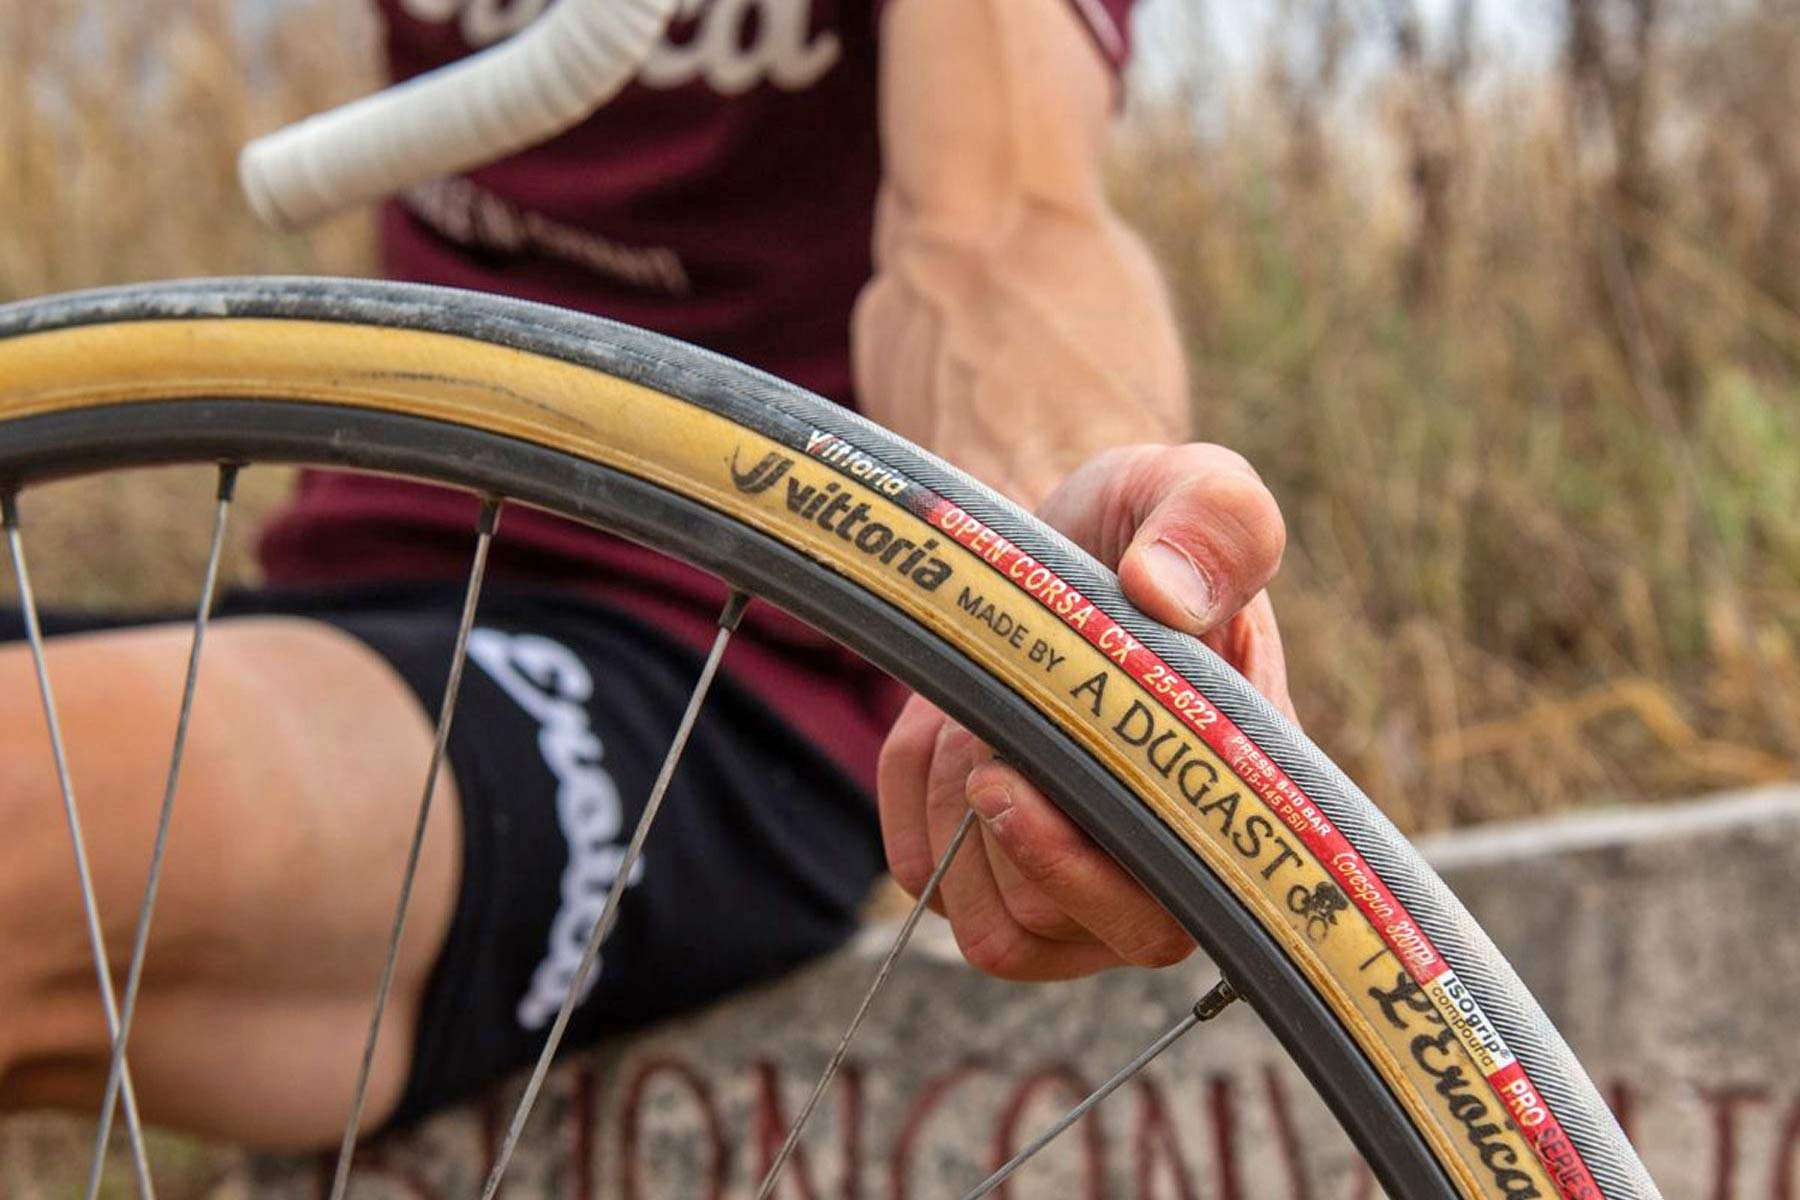 Vittoria made by A Dugast L Eroica limited edition 25mm retro vintage tubular road bike tires